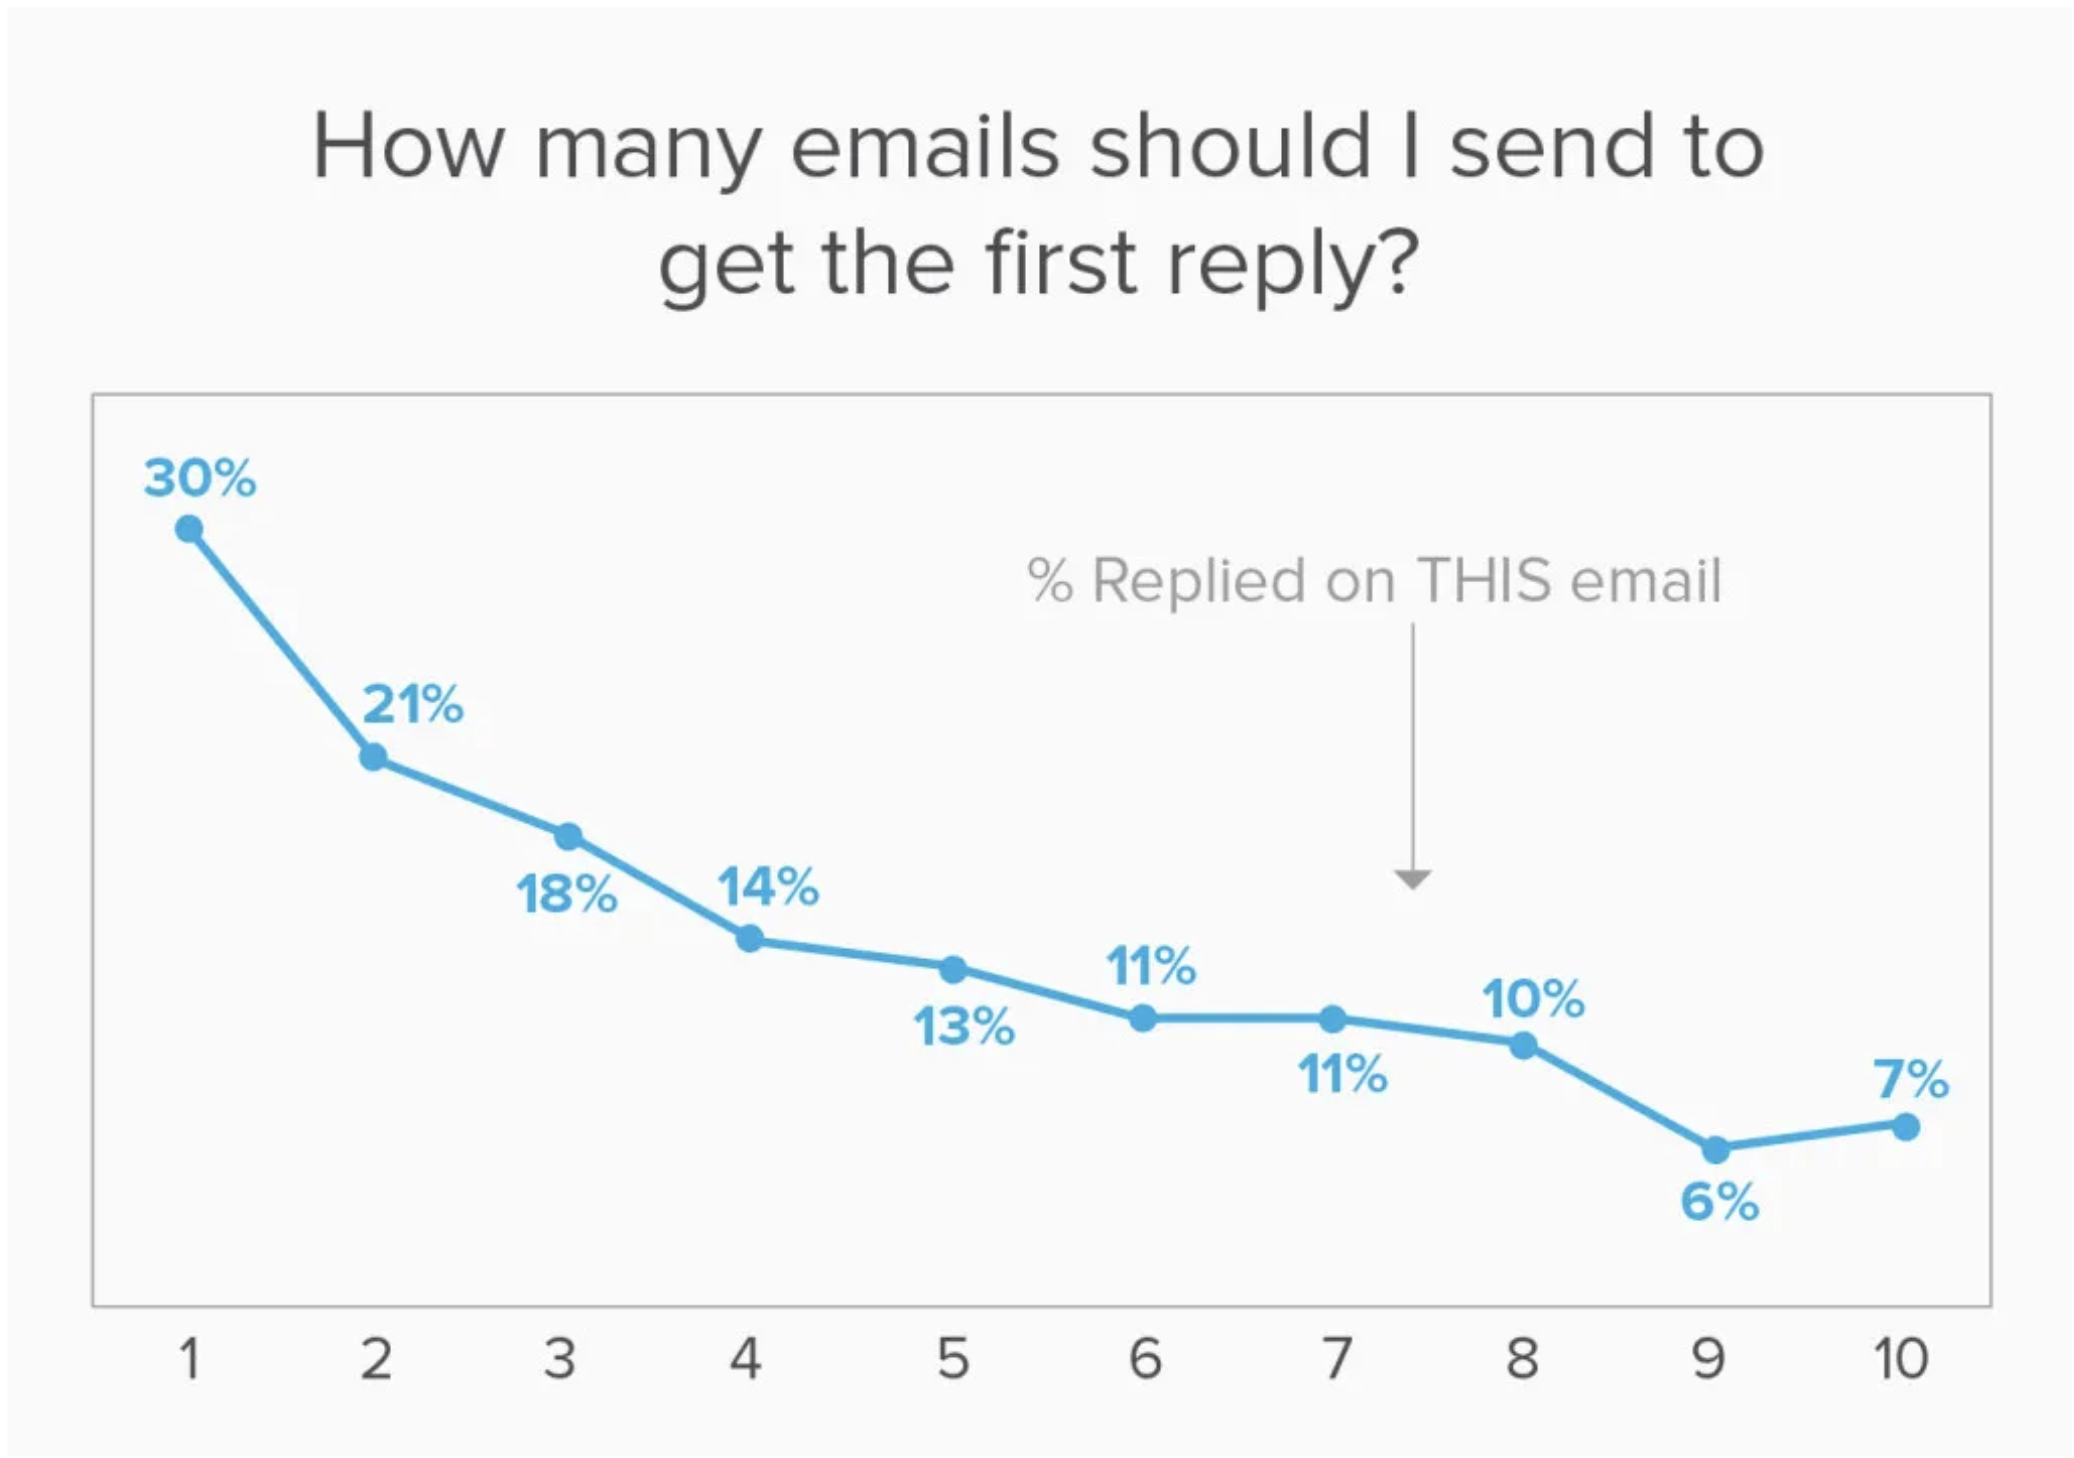 how many emails should I send to get the first reply?